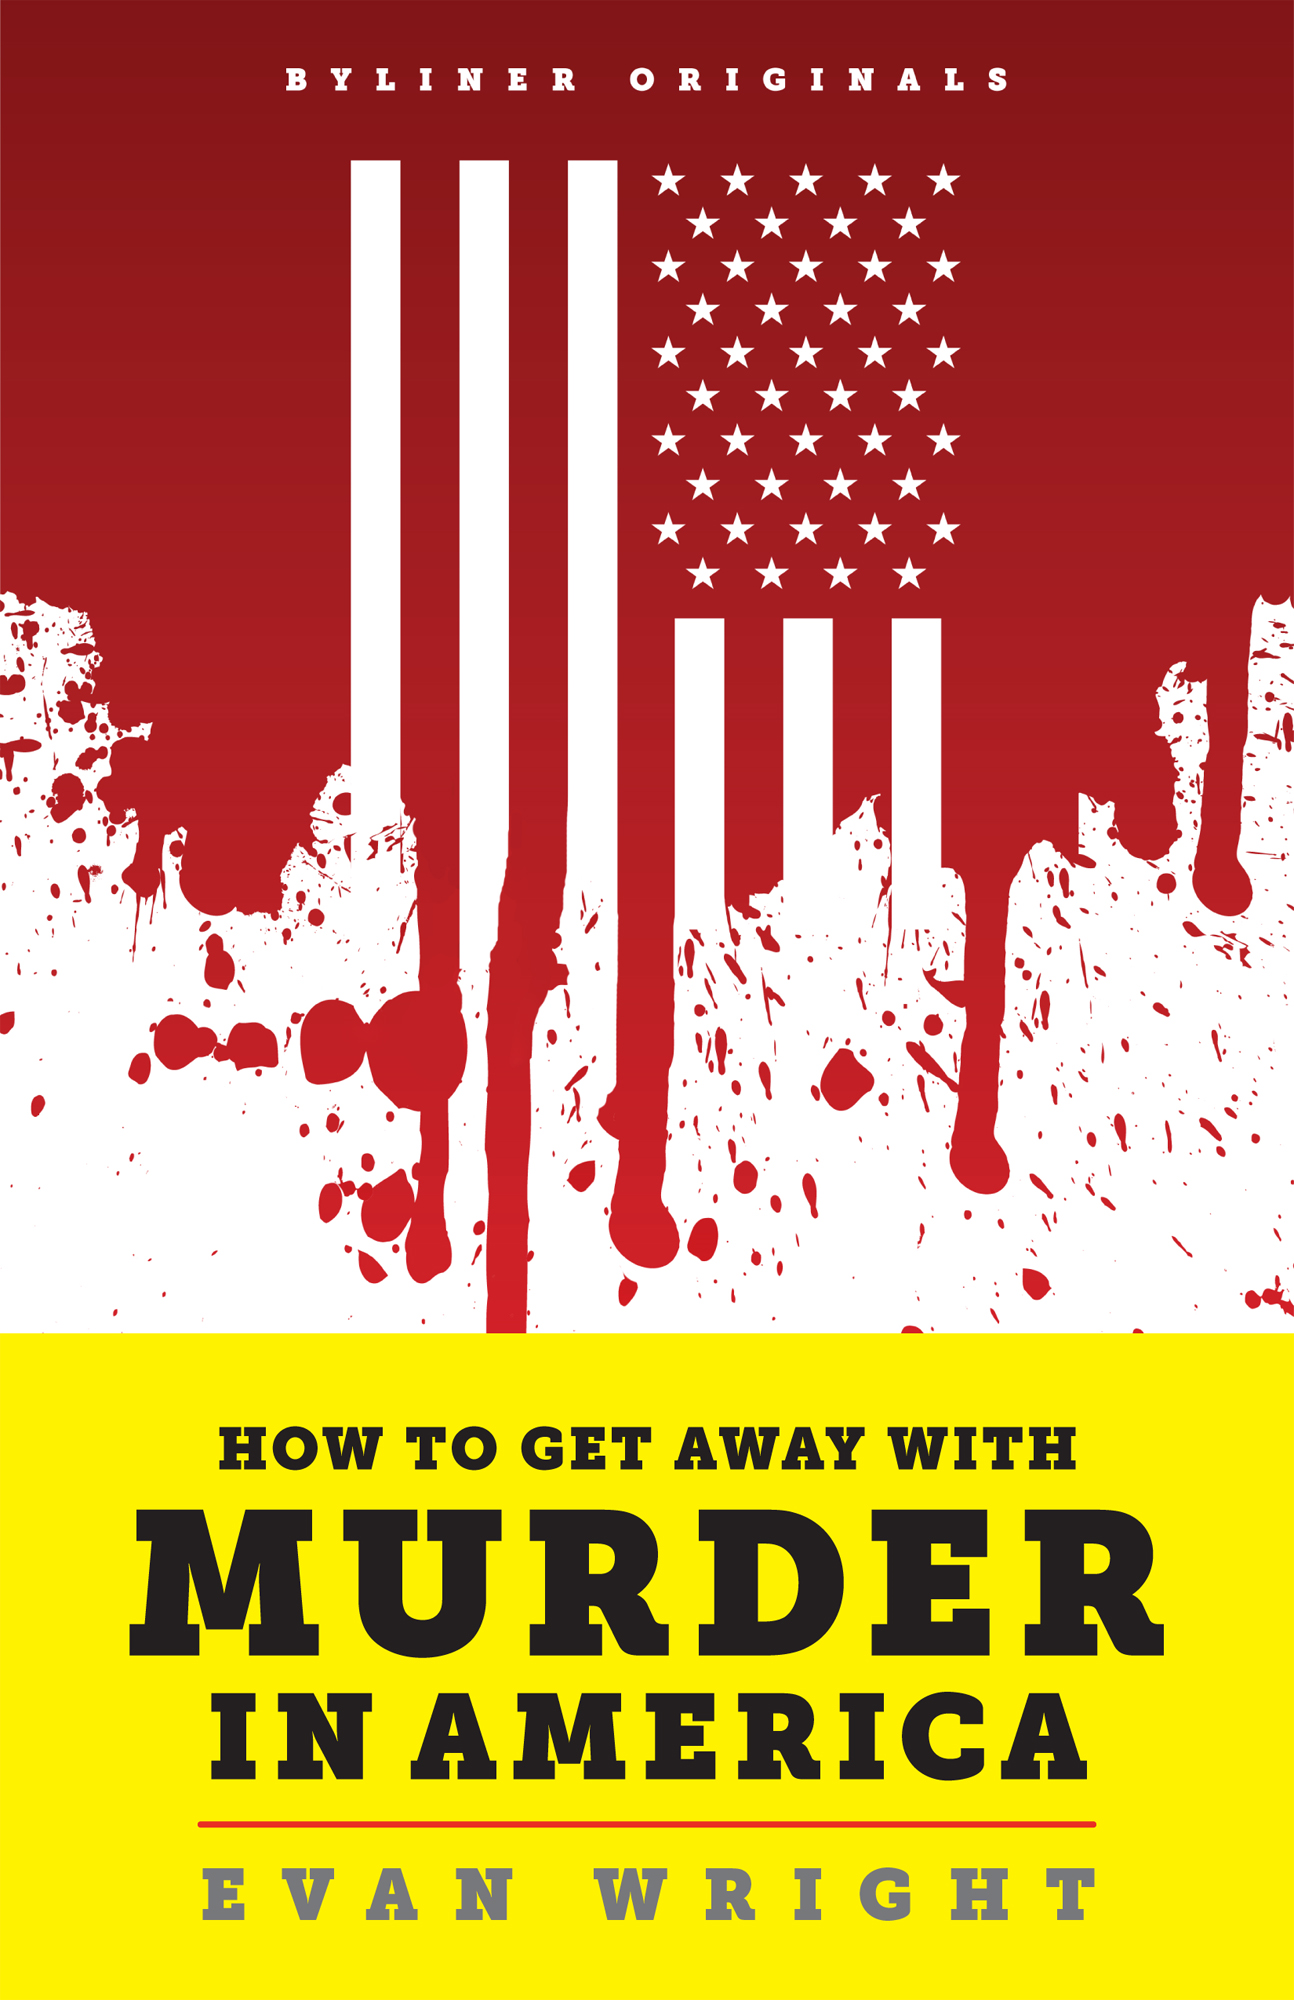 How to Get Away with Murder in America: Drug Lords, Dirty Pols, Obsessed Cops, and the Quiet Man Who Became the CIAs Master Killer By: Evan Wright